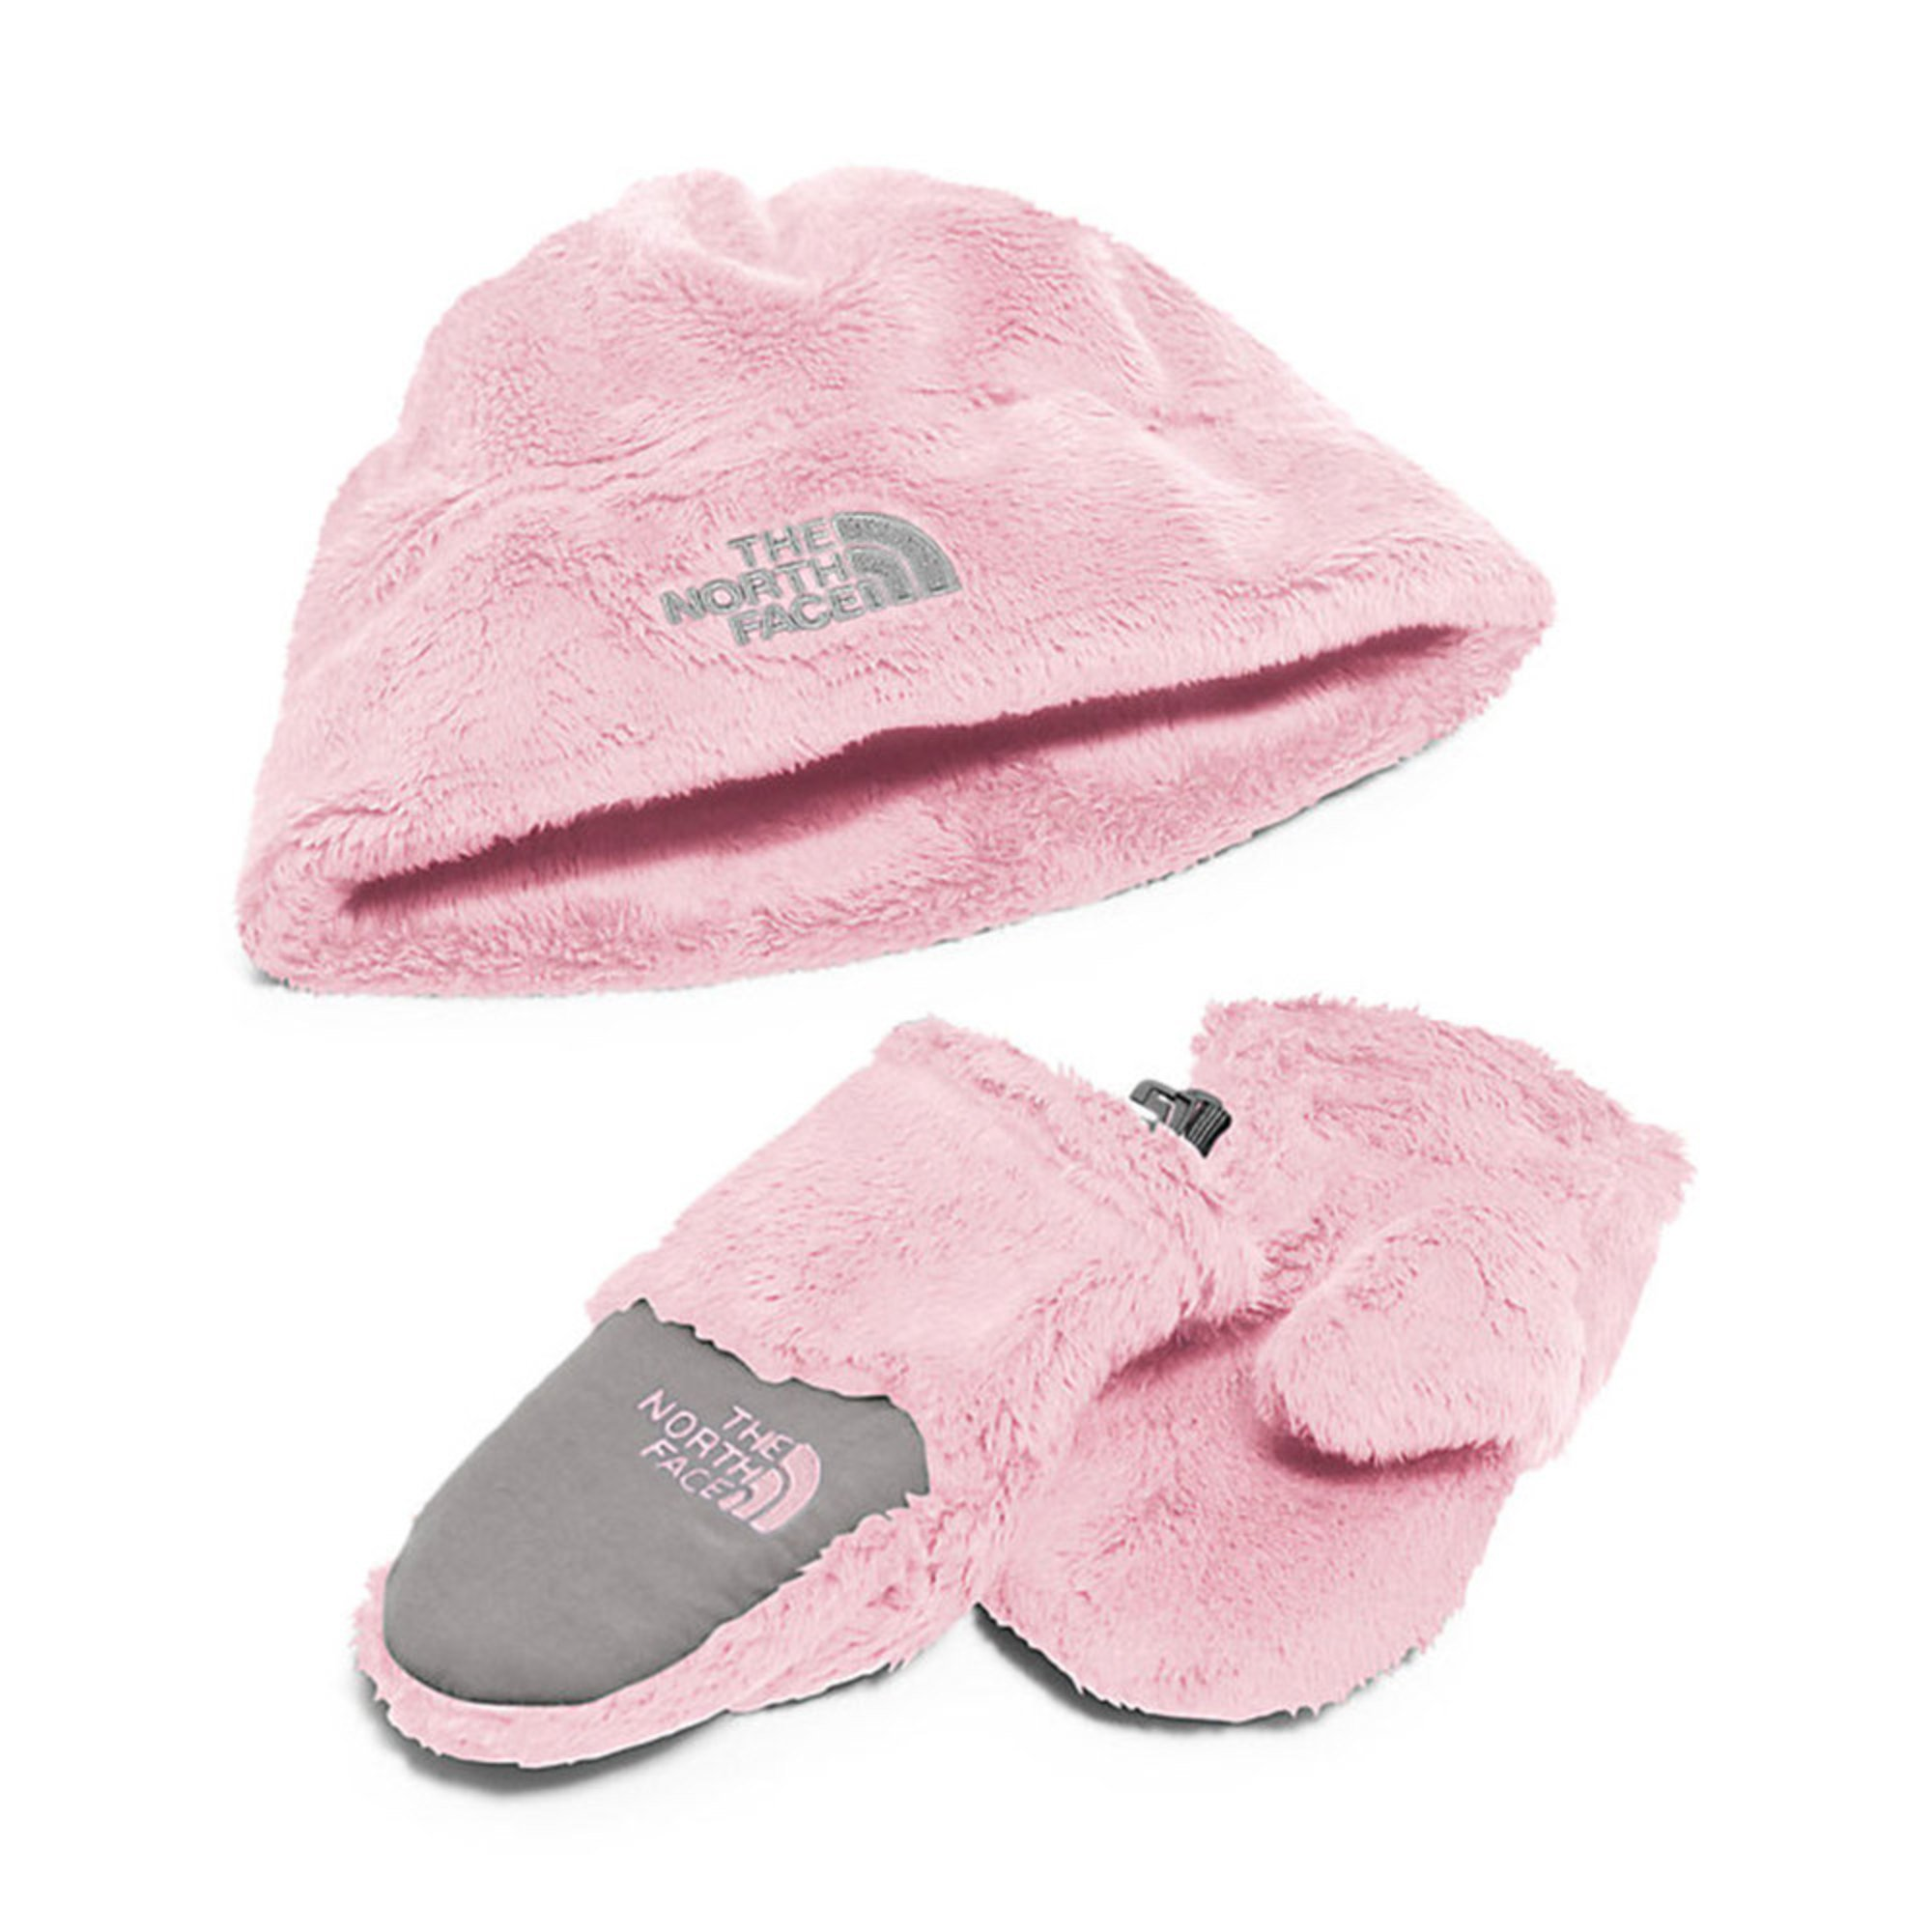 The North Face Baby Girls Oso Cute Boxed Set Pink Baby